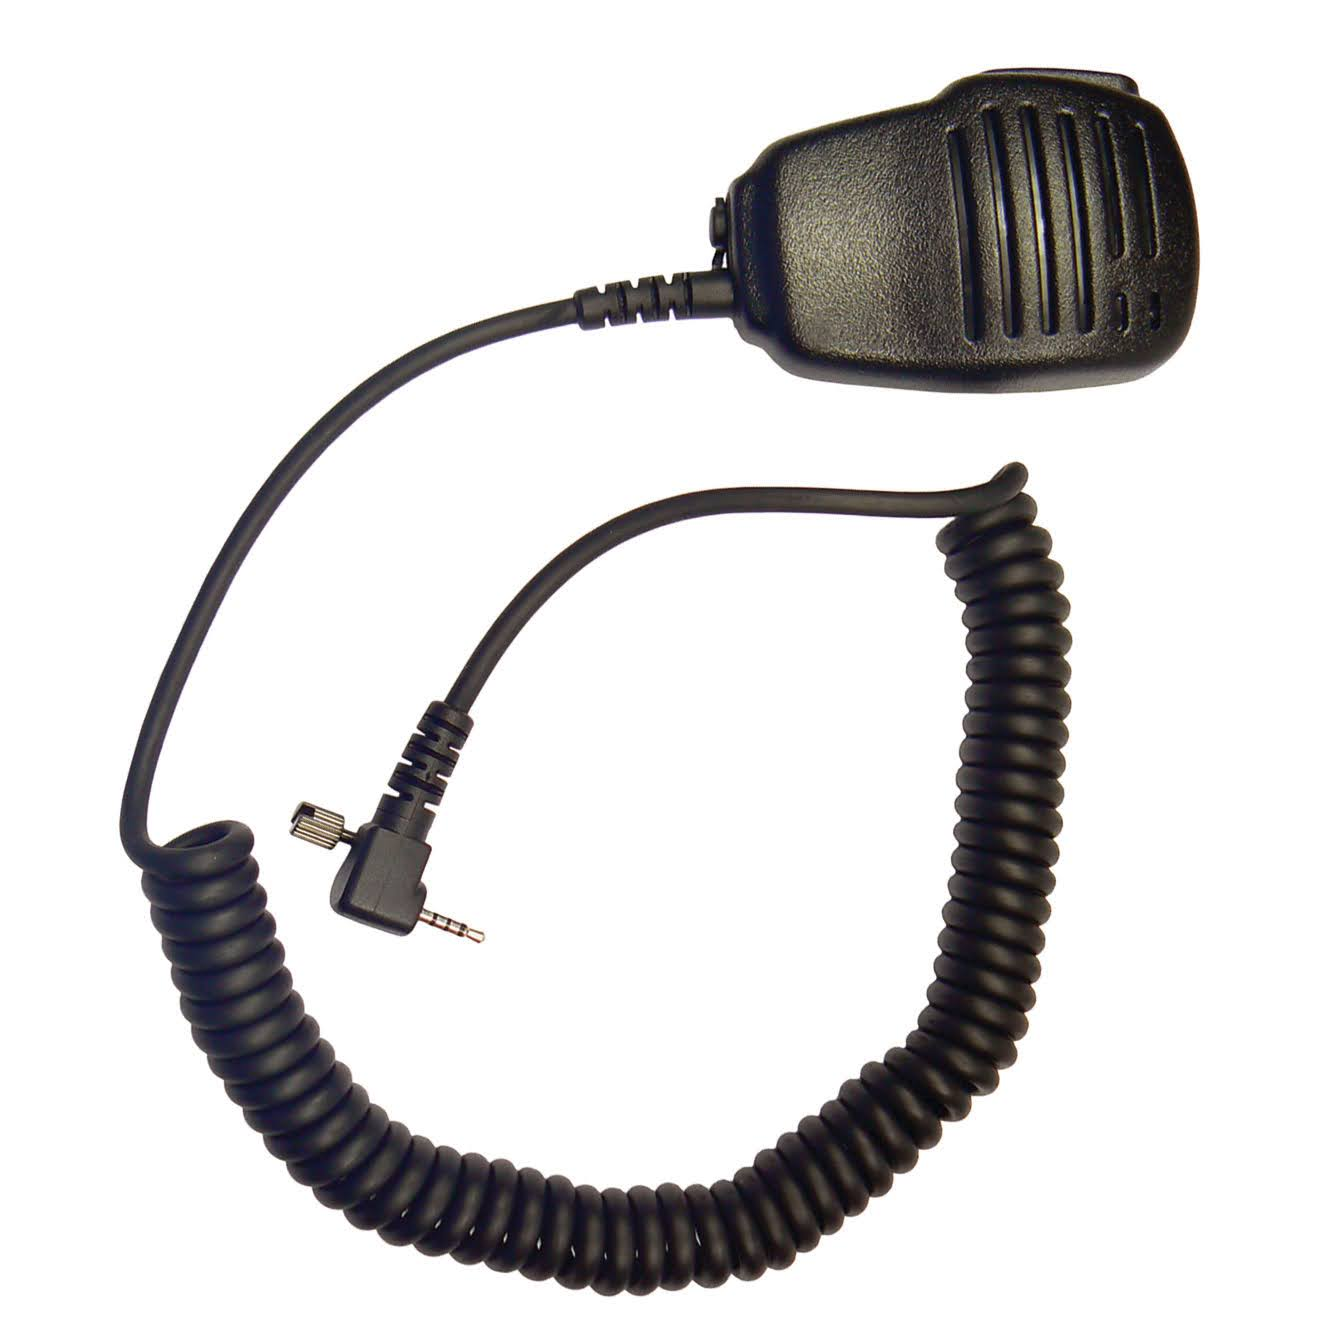 Motorola fist mic Microphone with single pin and screw jack